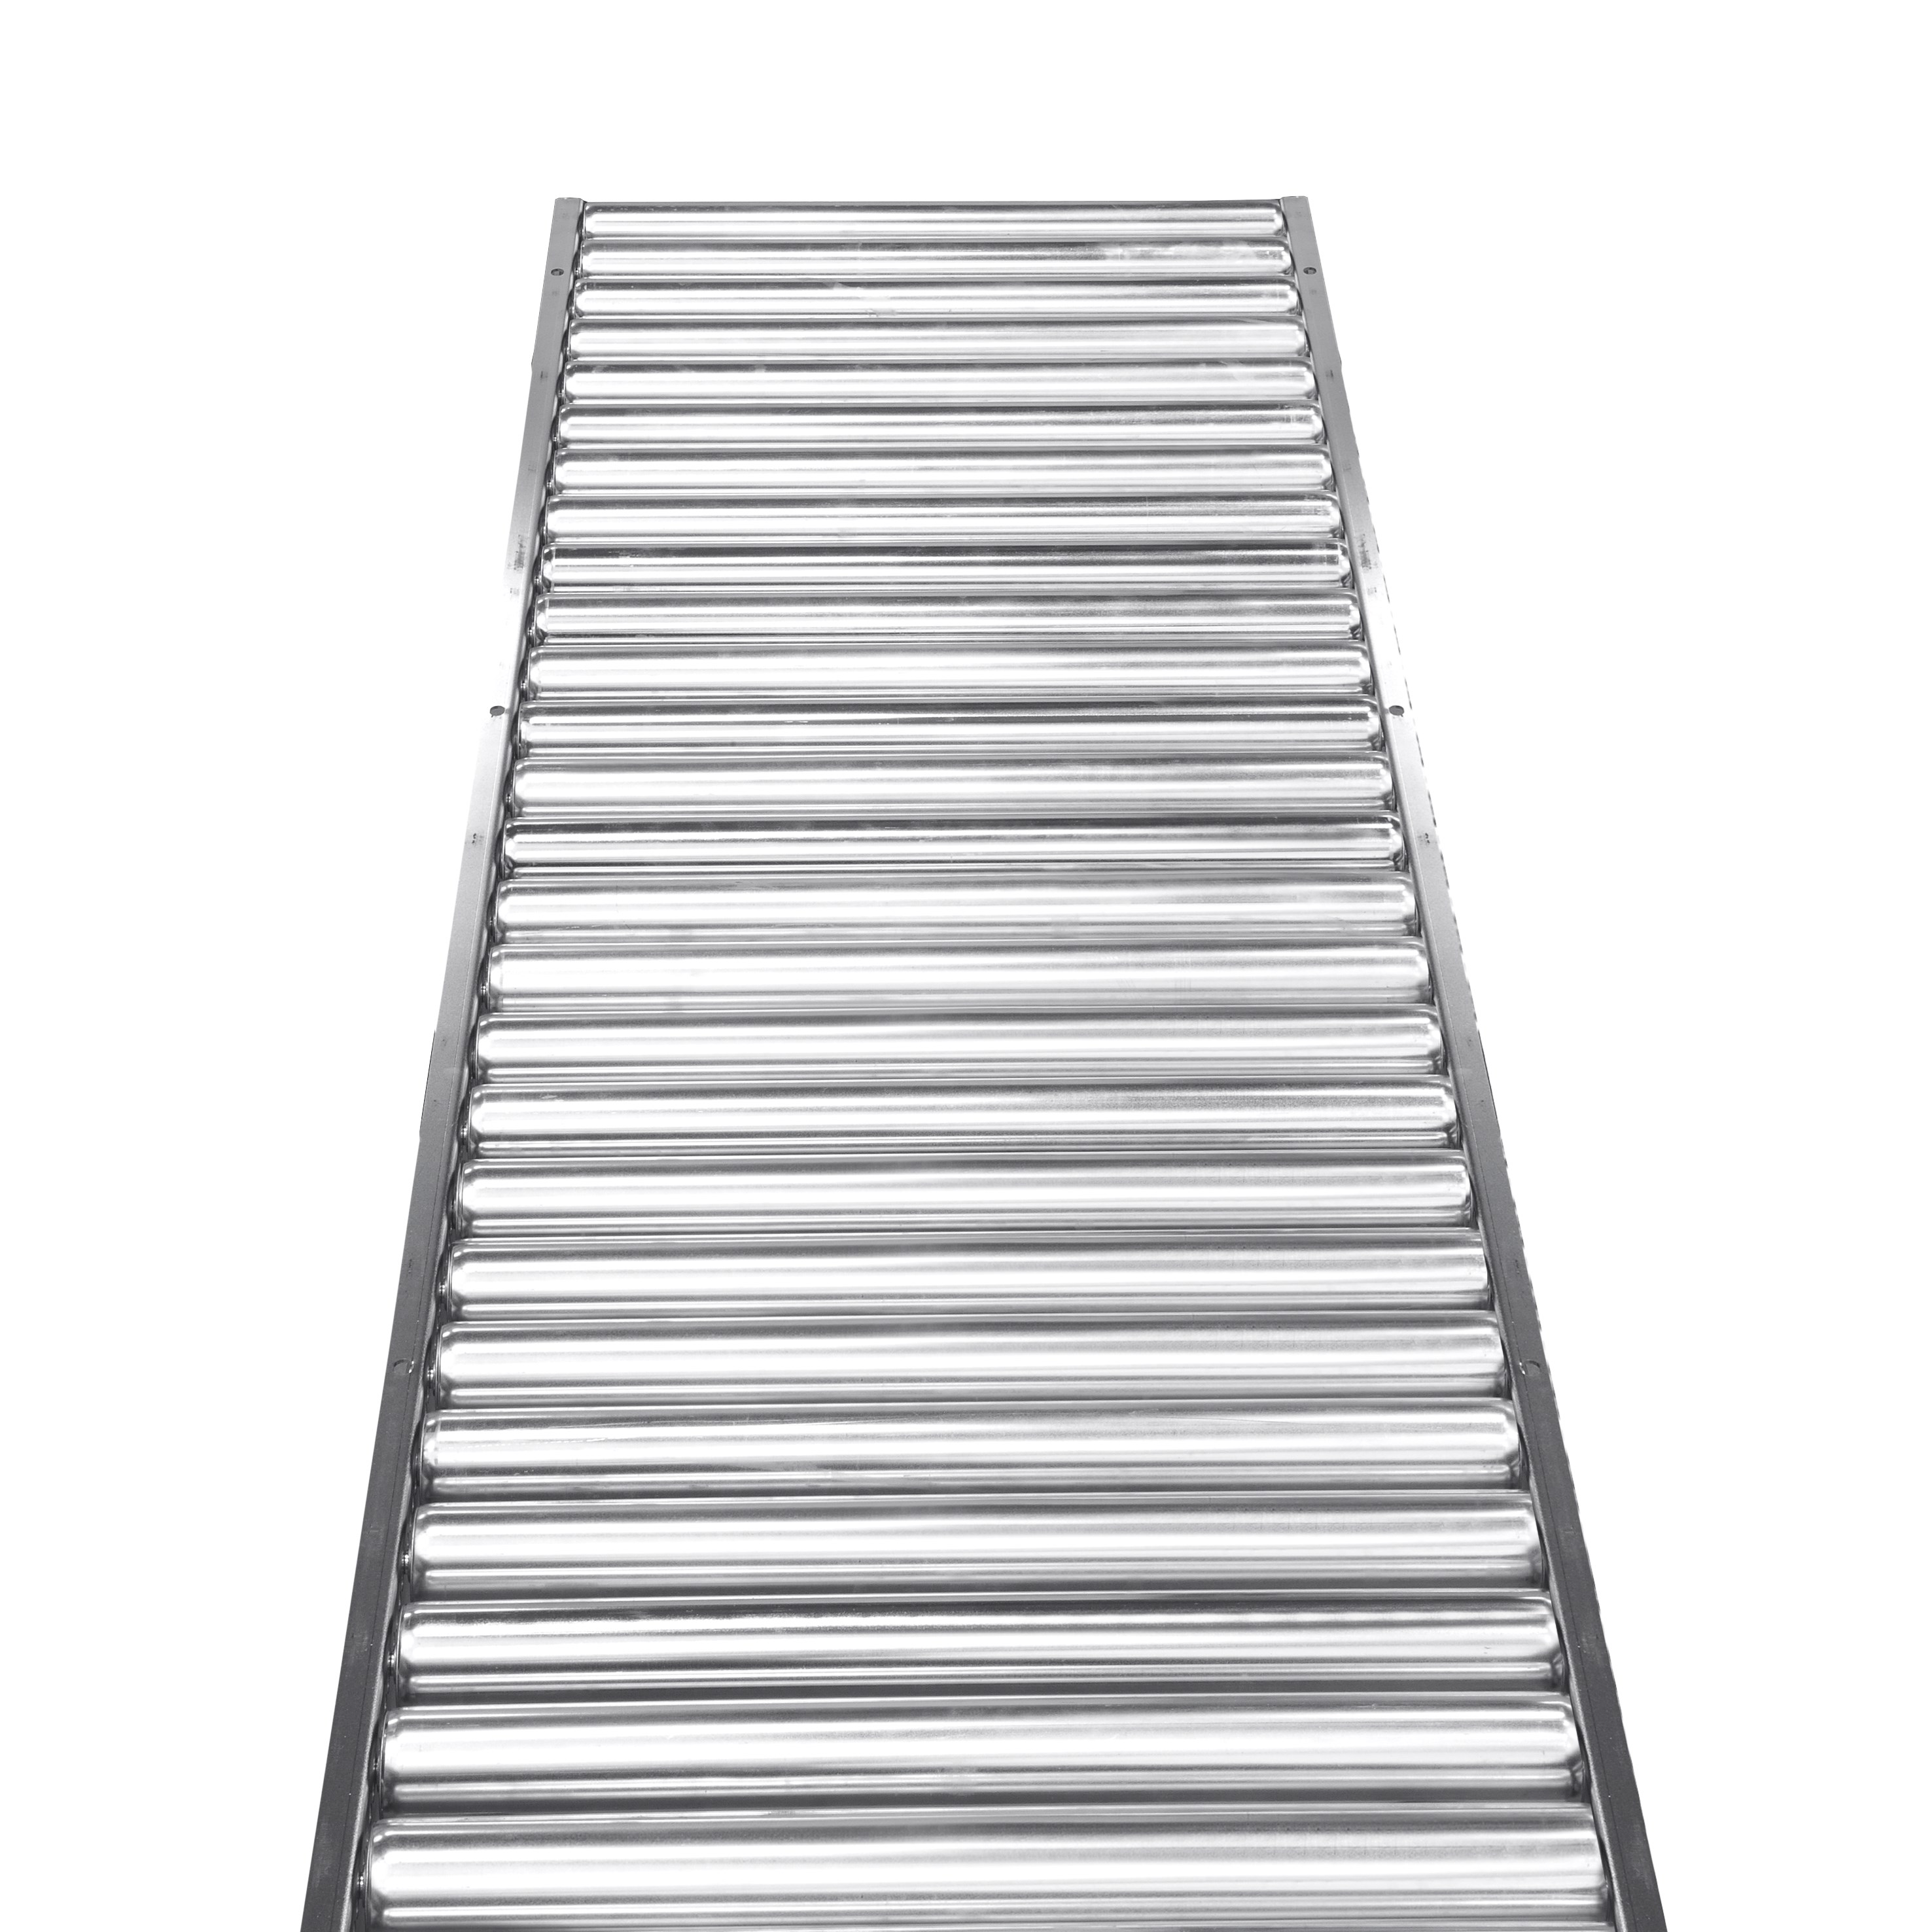 Easy Roller conveyor steel supporting role